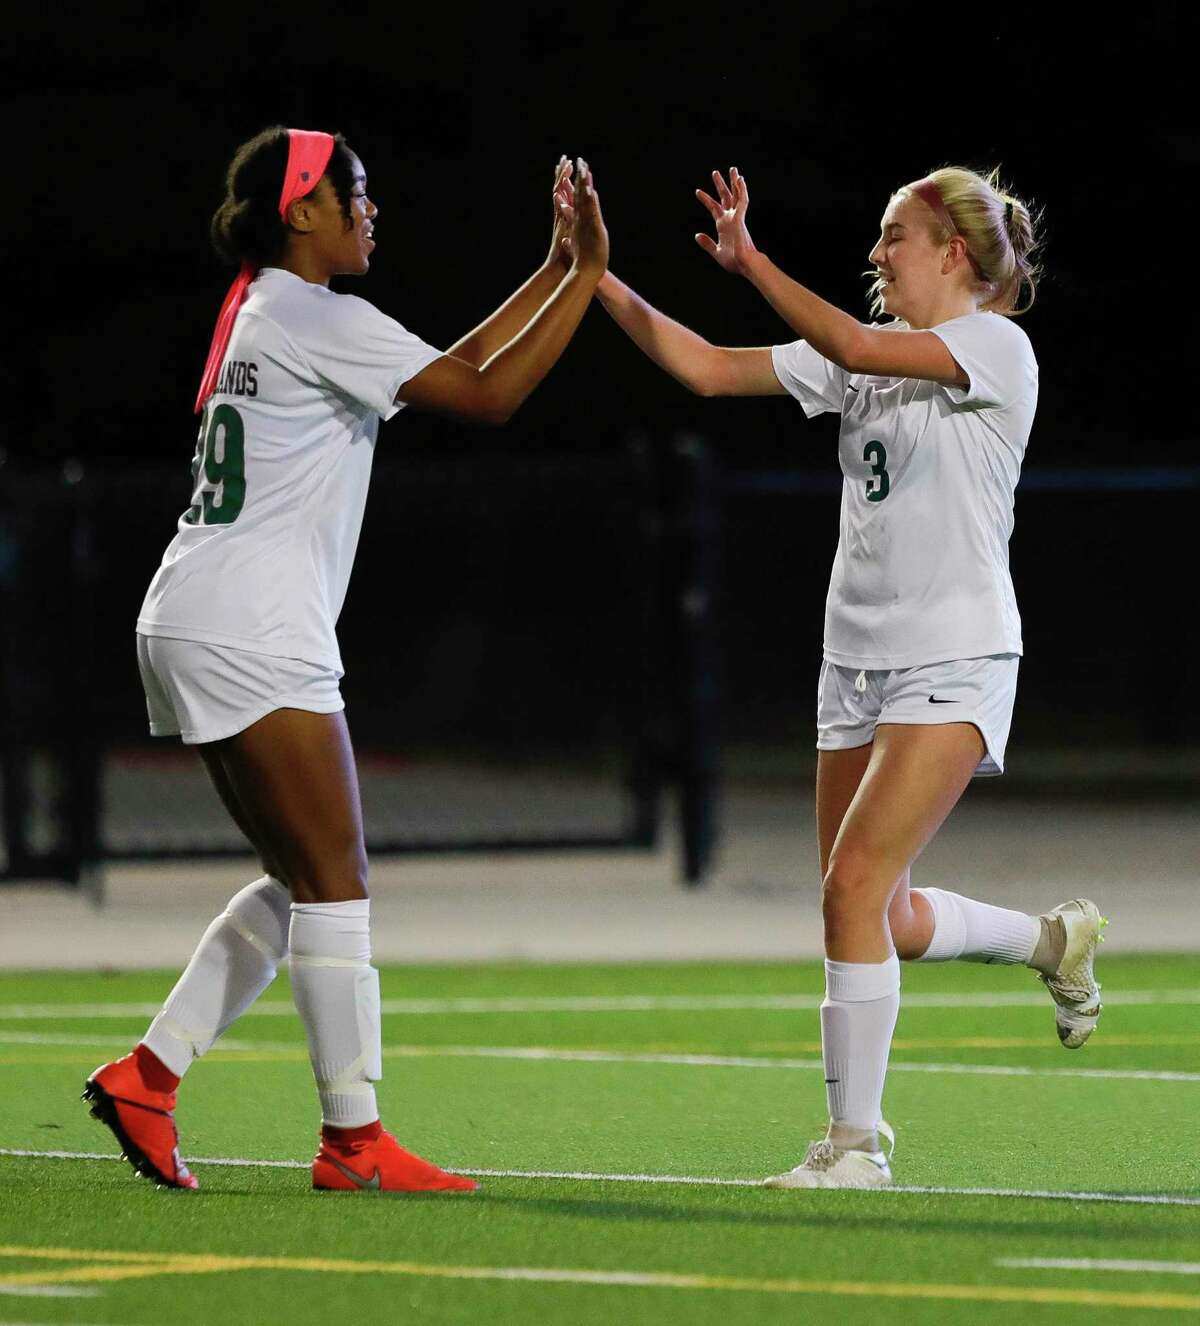 The Woodlands midfielder Courtney Koehler (3) gets a high-five from forward Samone Knight (29) after scoring a goal during the first period of a District 15-6A high school soccer match at Woodforest Bank Stadium, Friday, Jan. 24, 2020, in Shenandoah.